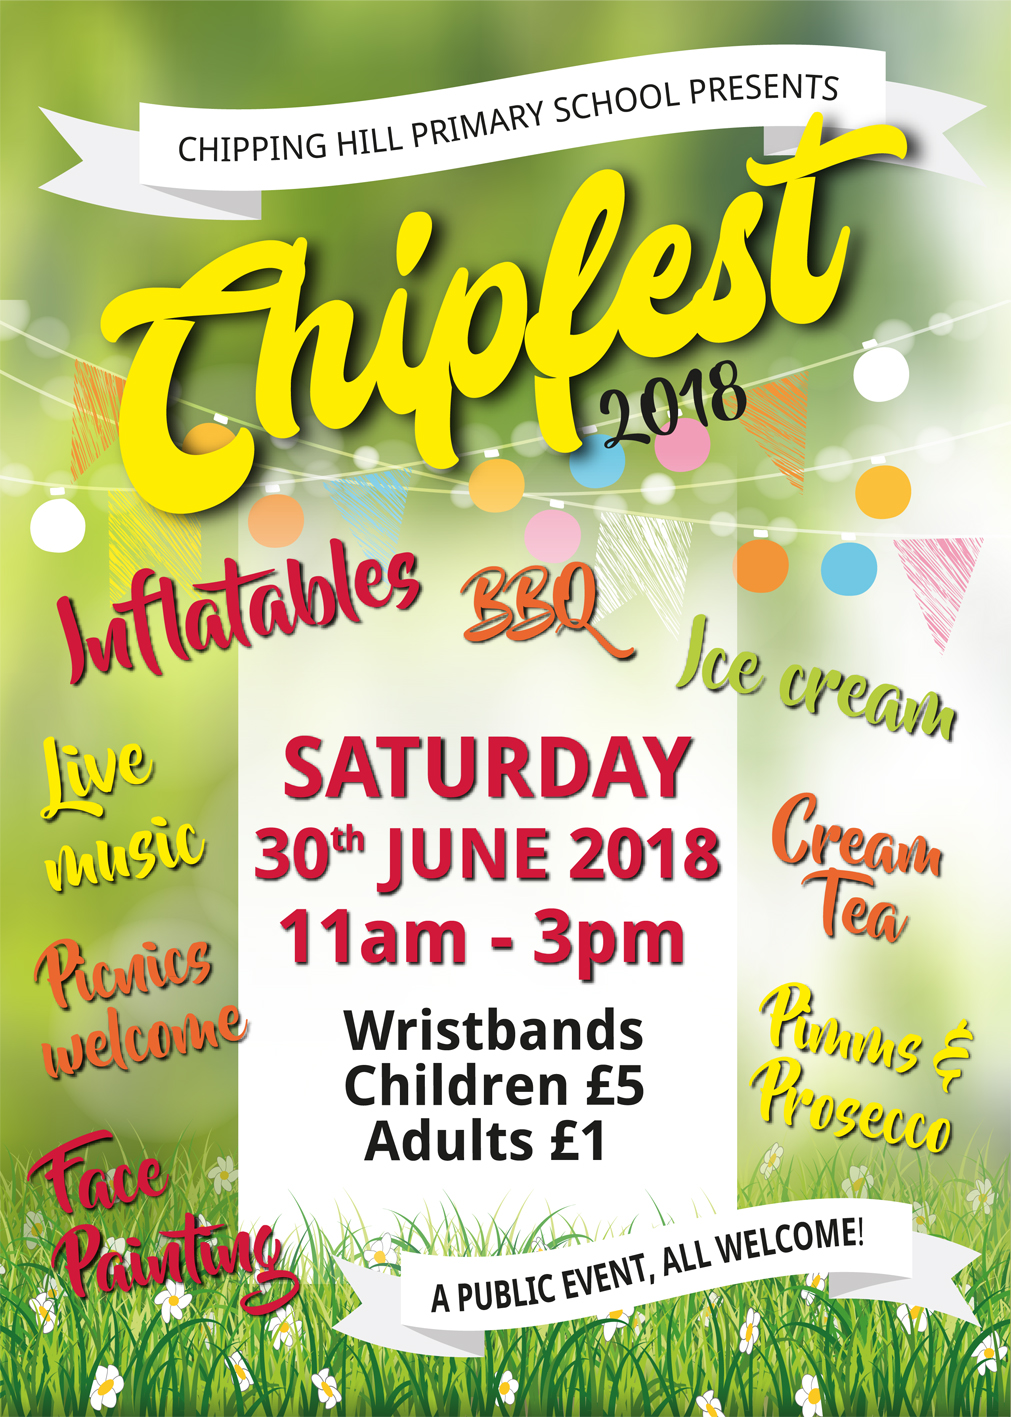 Chipfest Family Fun Day